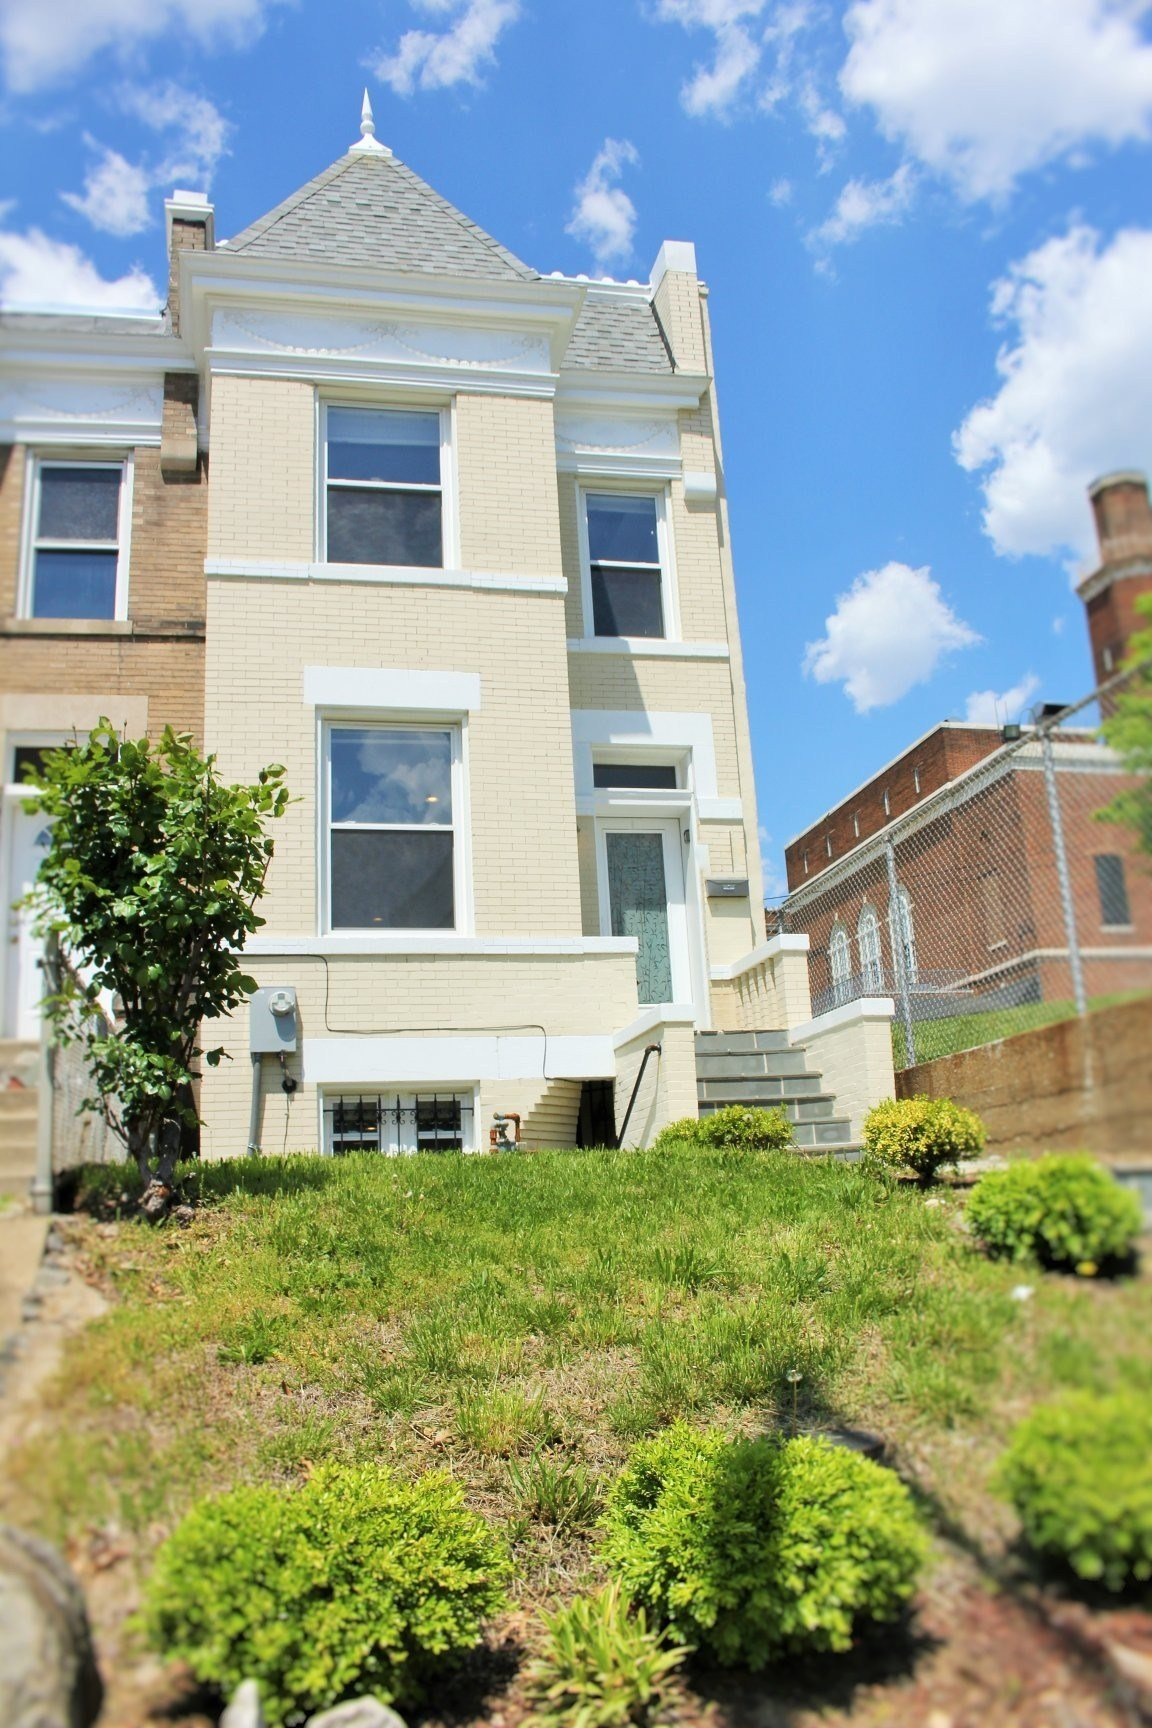 Best R St Ne Washington Dc 20002 3 Bedroom Apartment For Rent Padmapper With Pictures